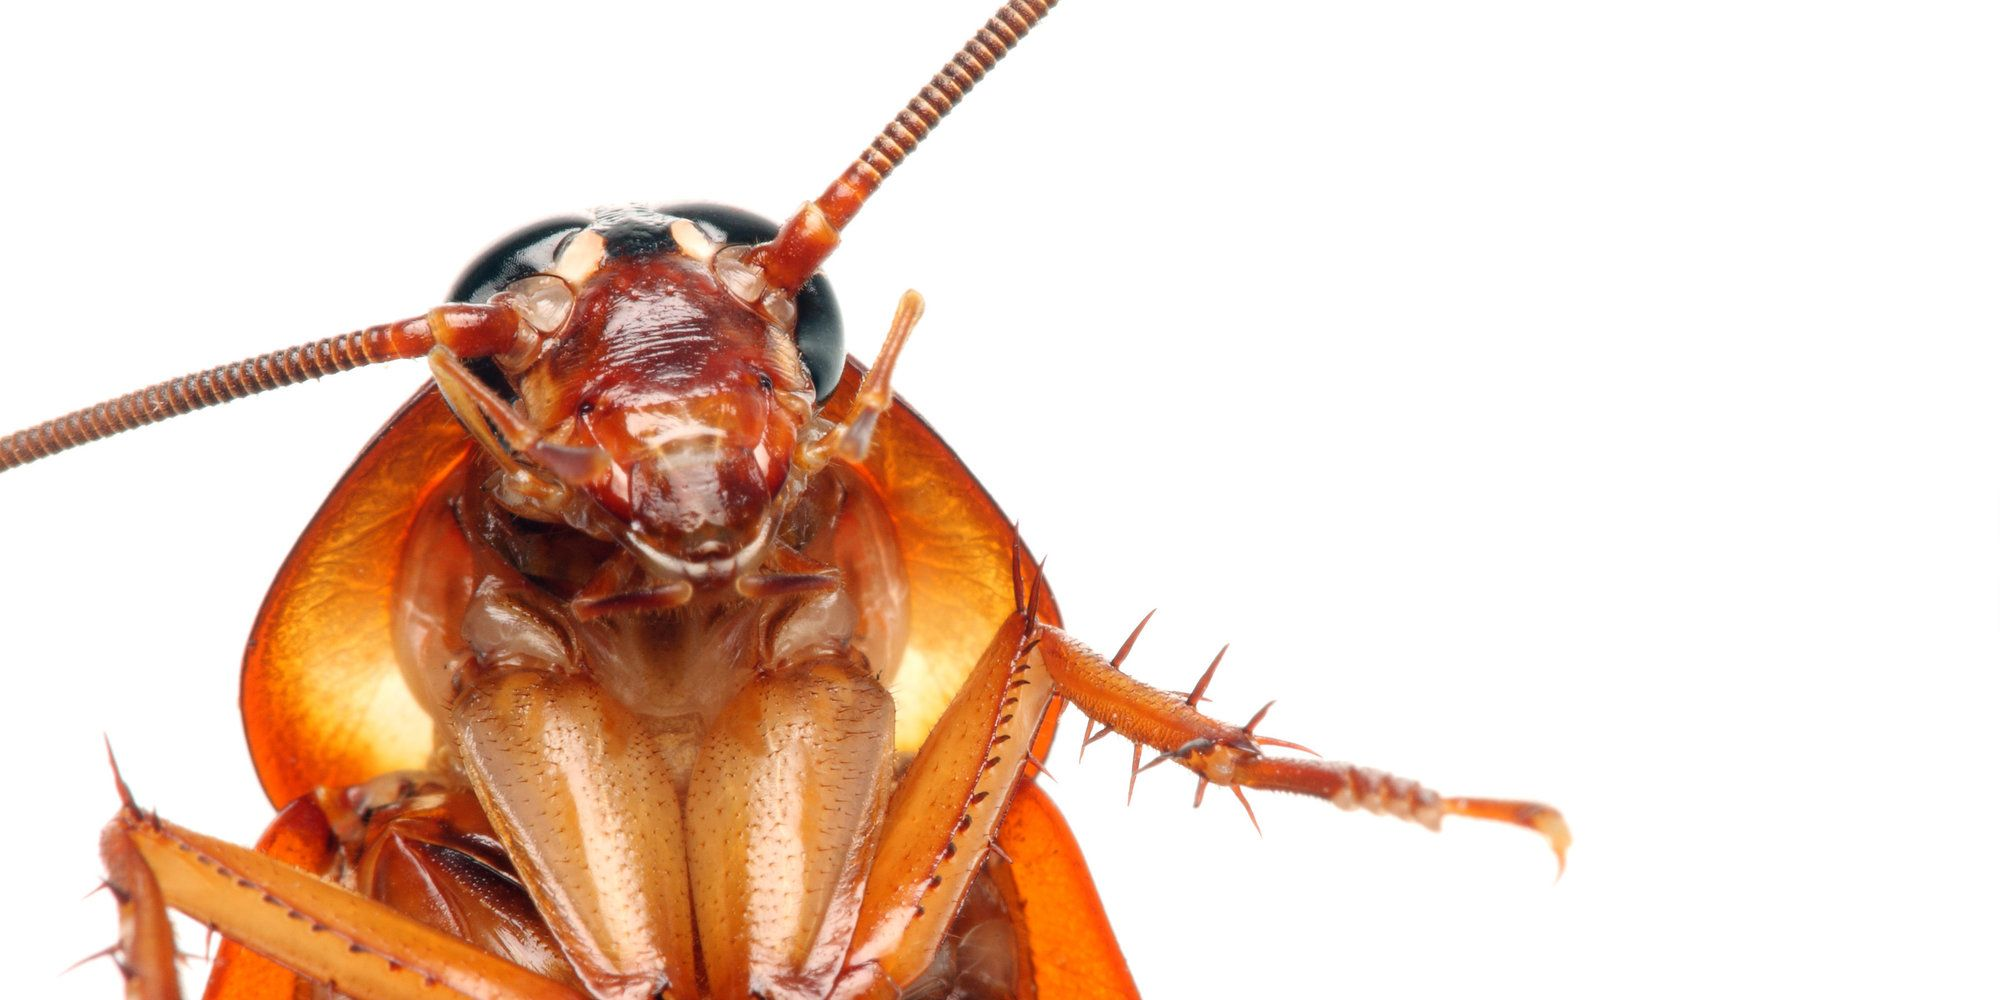 Remove Live Squirming Cockroach From Woman\'s Skull